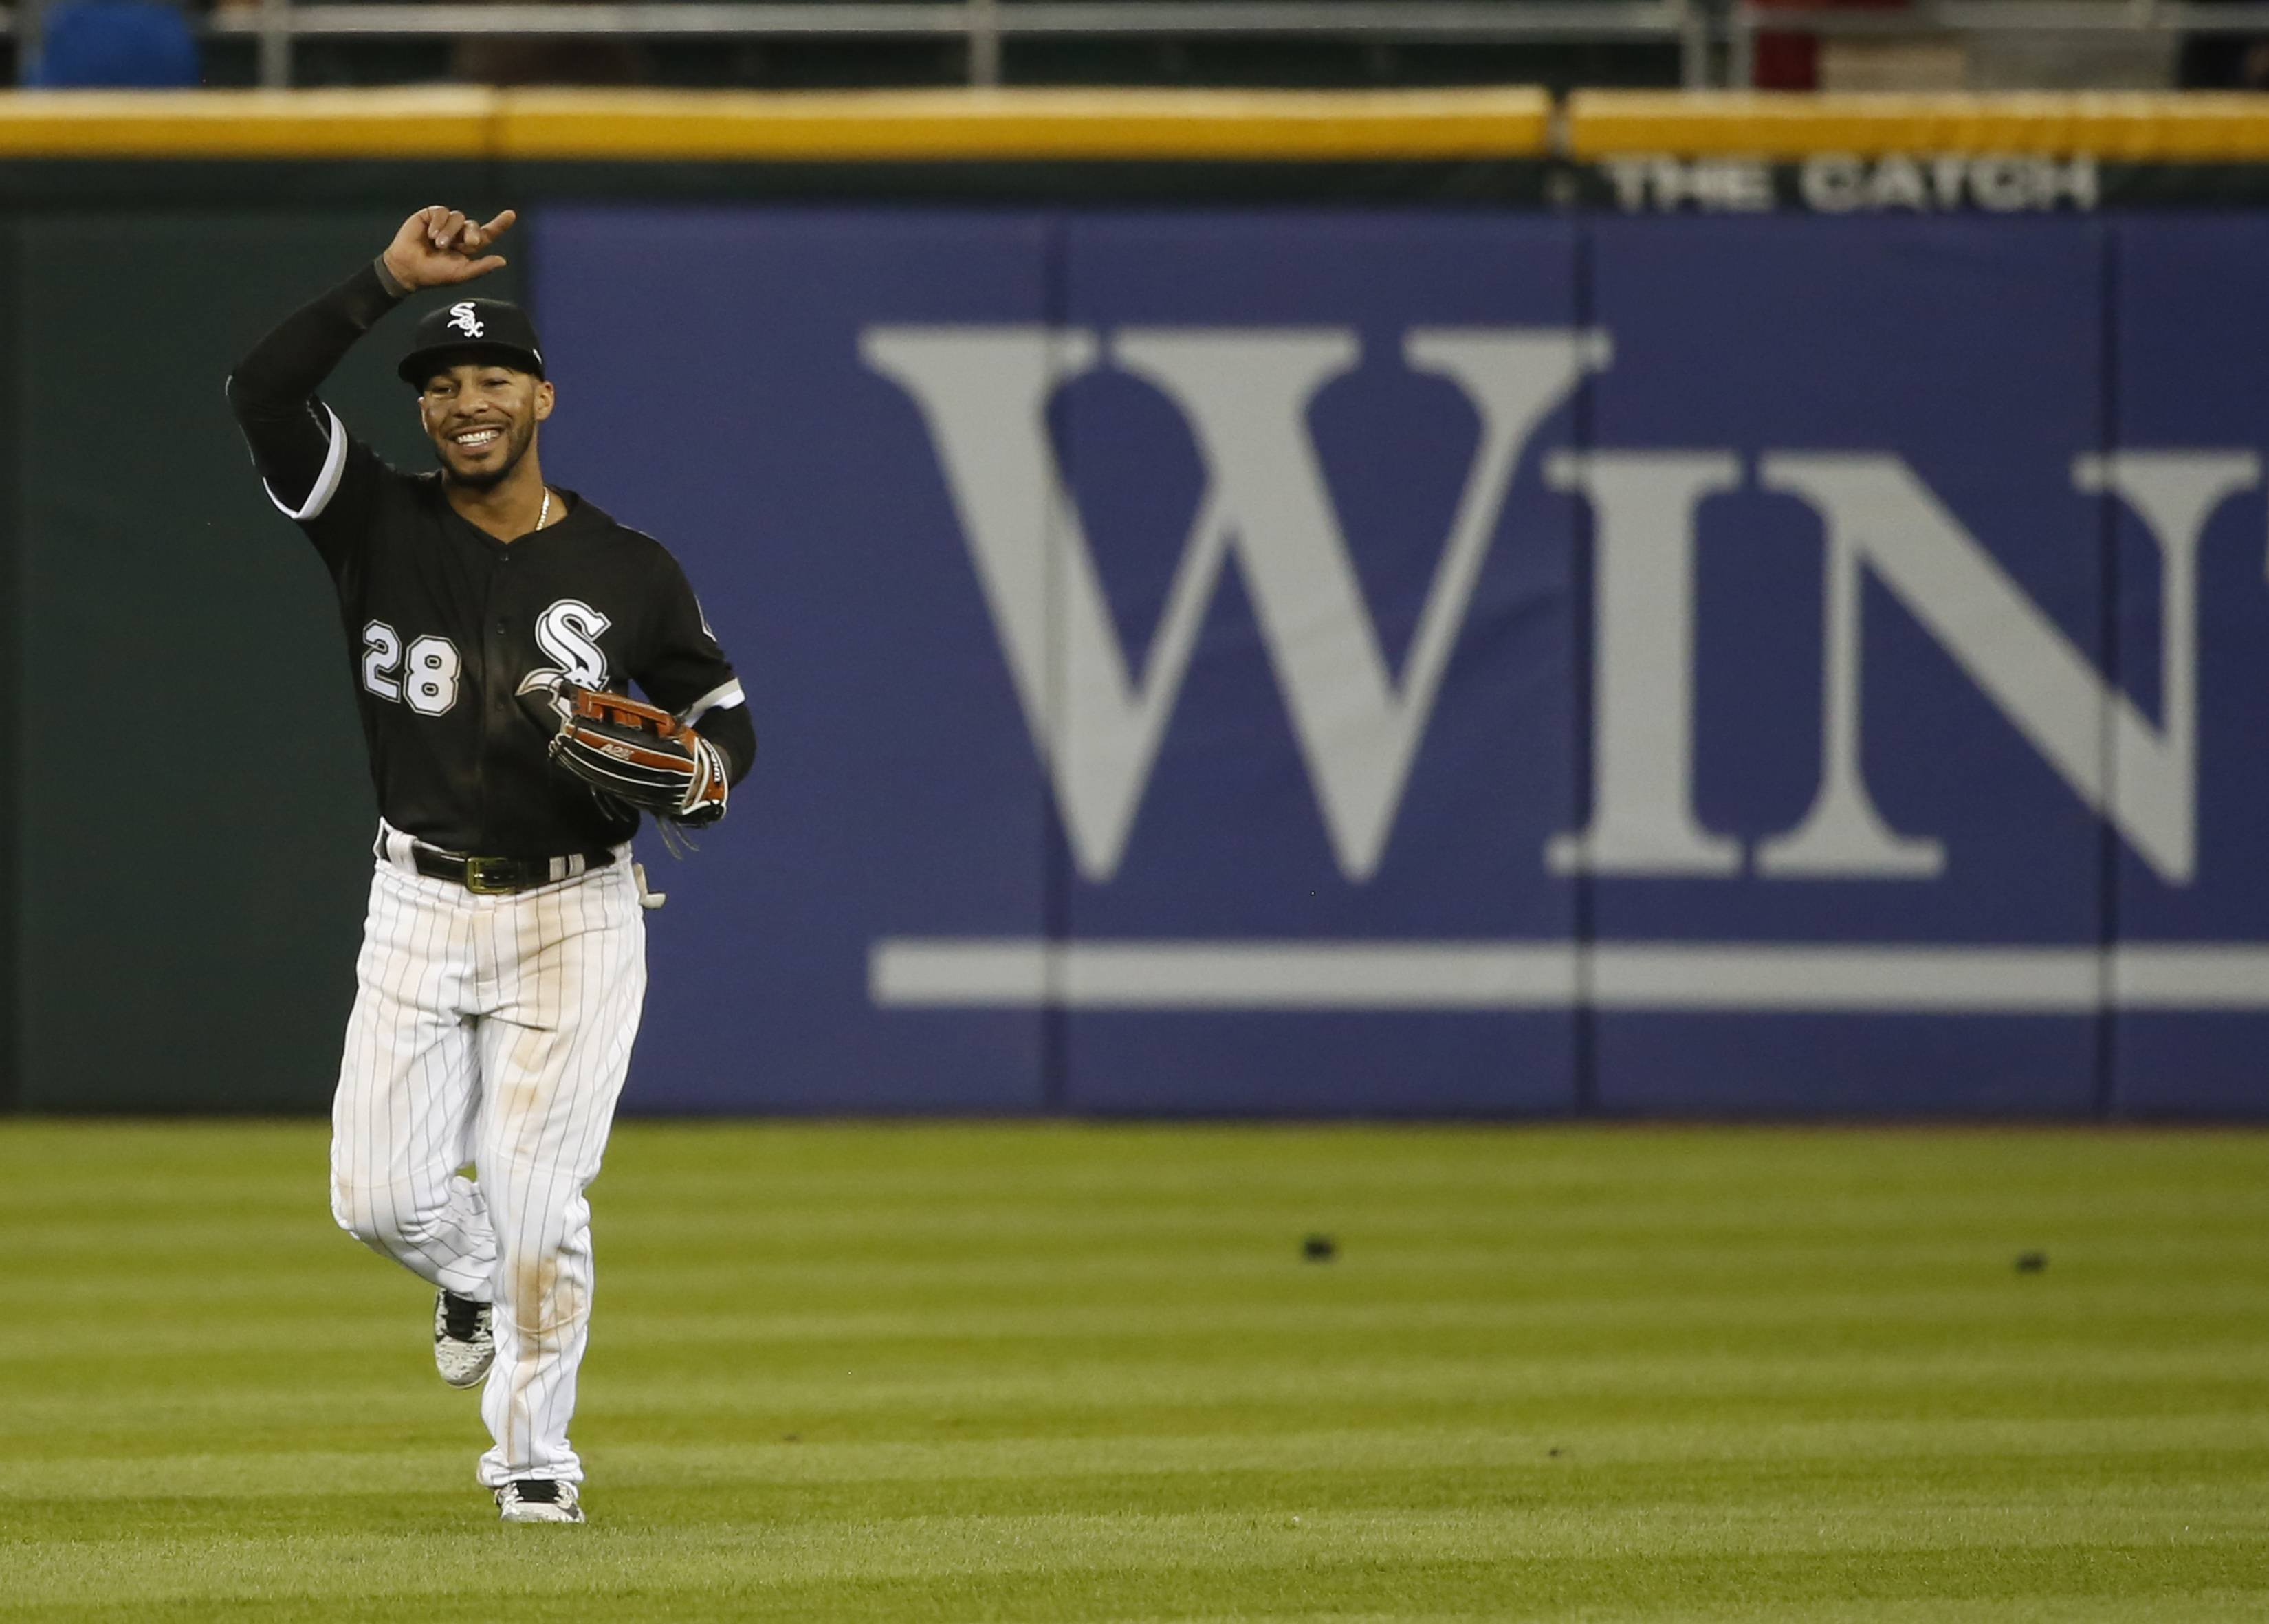 Chicago White Sox's Leury Garcia celebrates the White Sox's 10-5 win over the Kansas City Royals after a baseball game, Tuesday, April 25, 2017, in Chicago. (AP Photo/Charles Rex Arbogast)